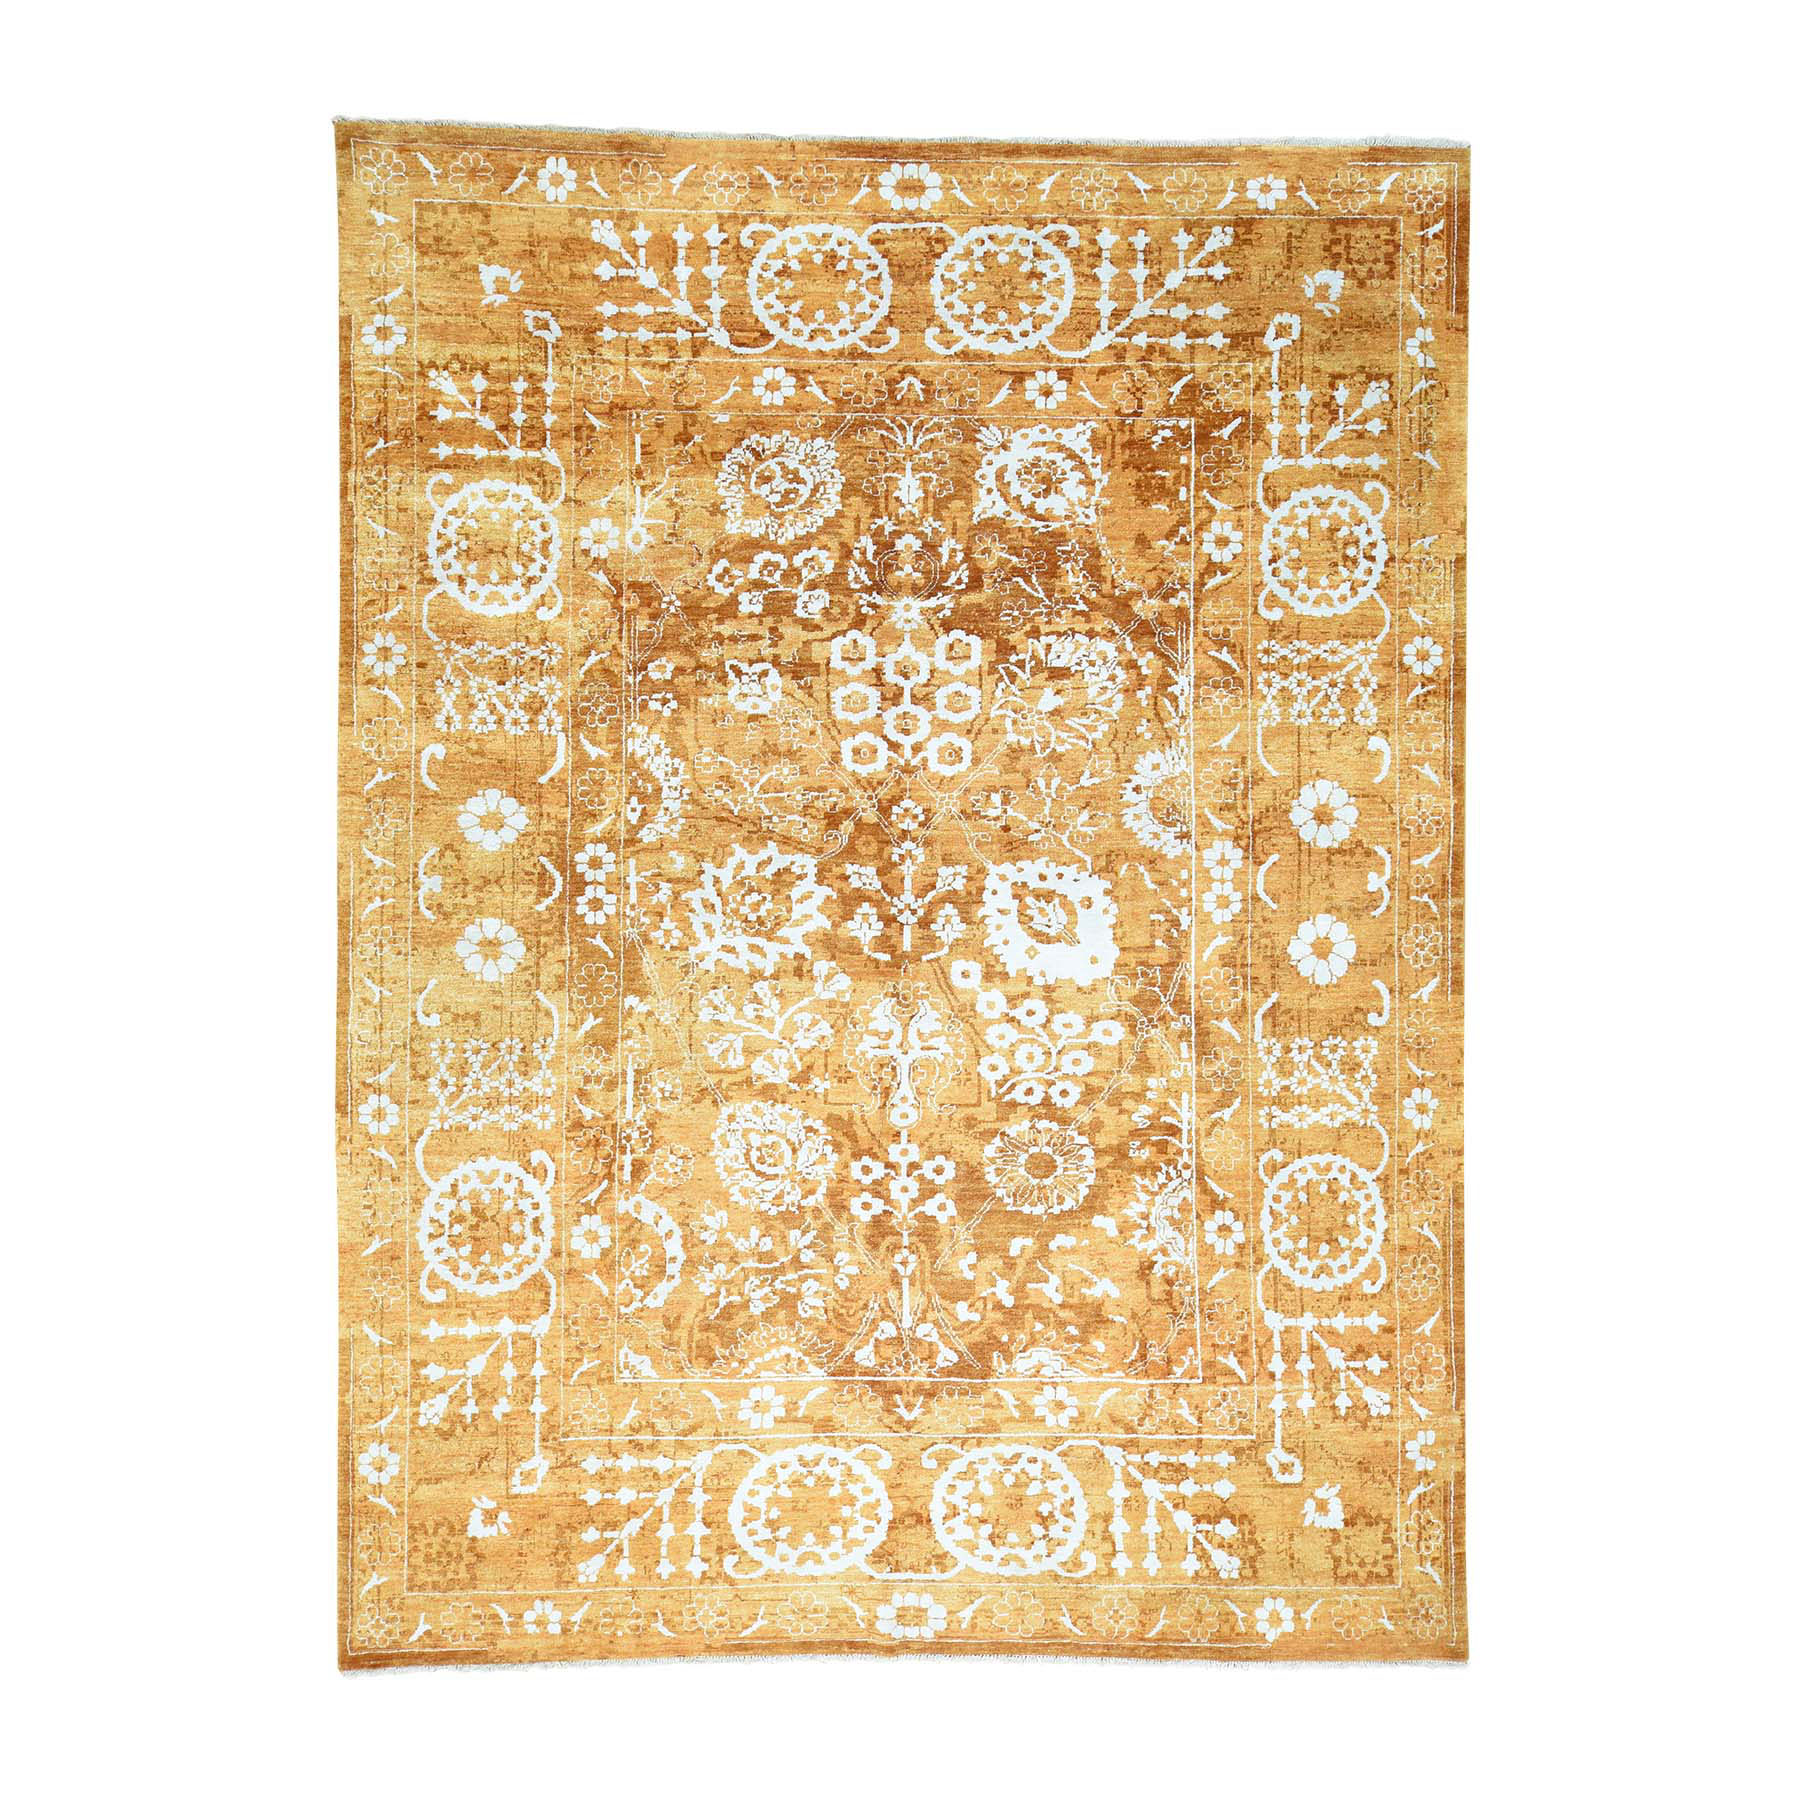 Pirniakan Collection Hand Knotted Orange Rug No: 0164892